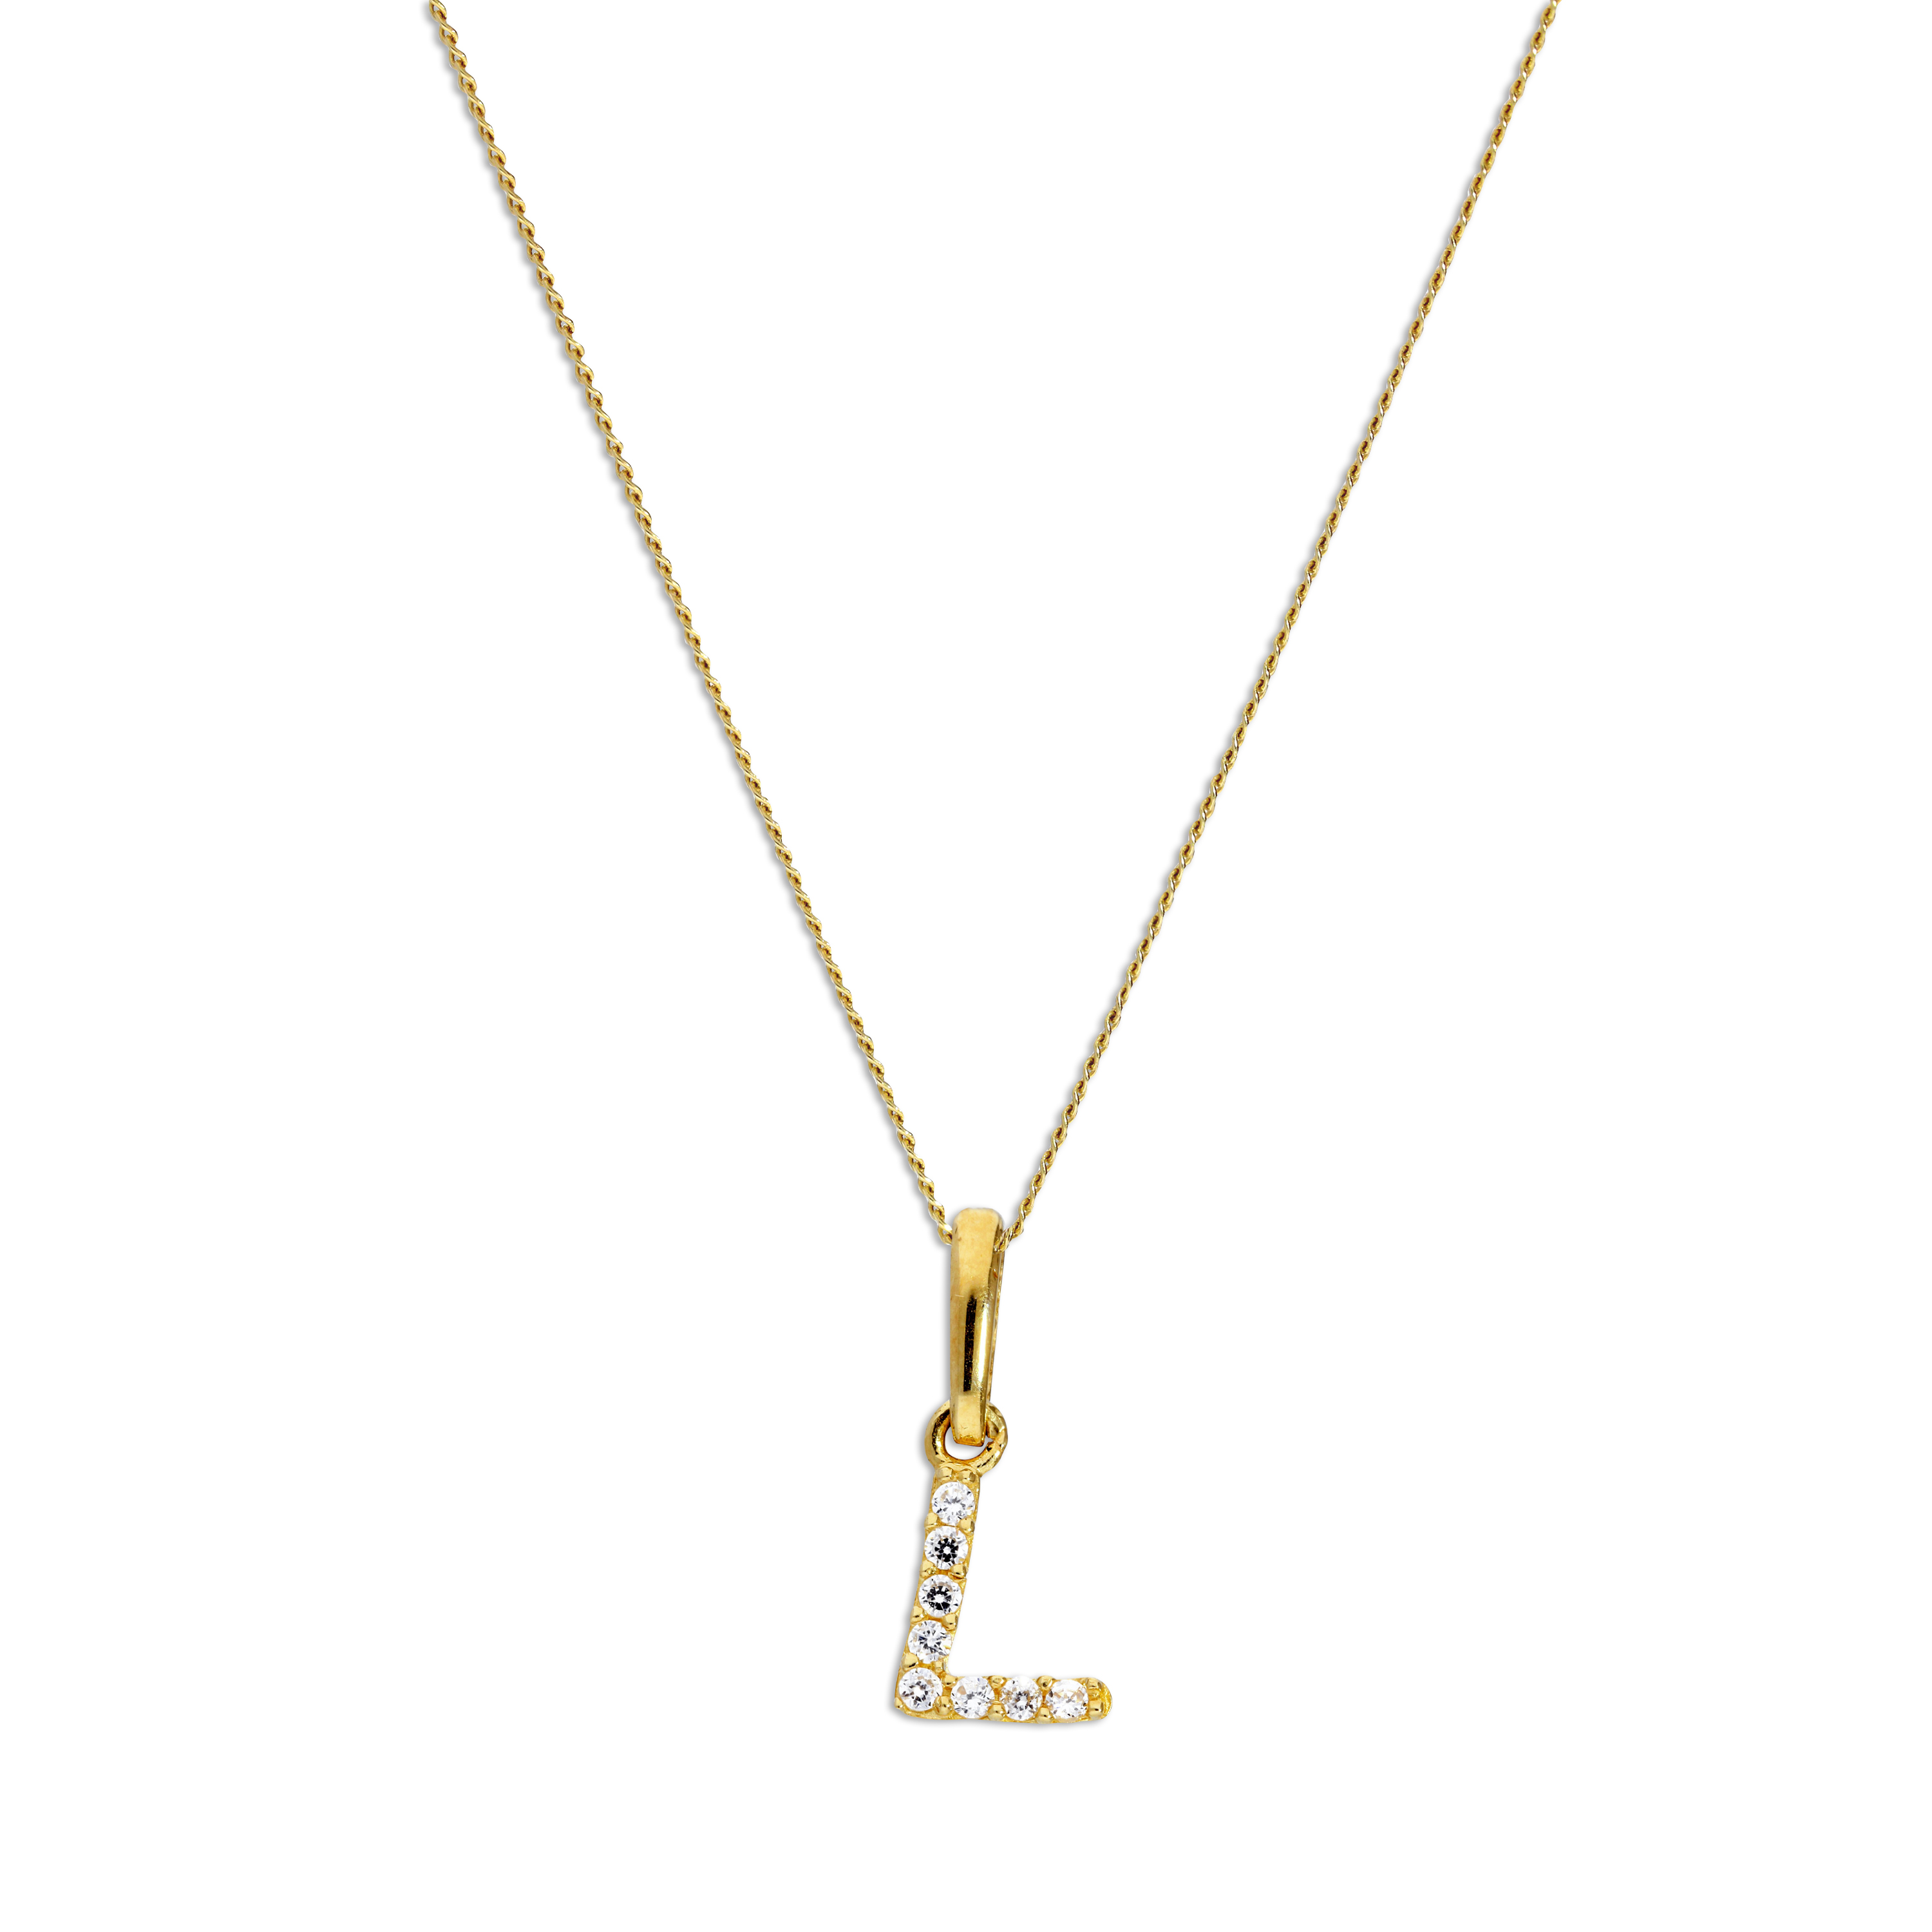 An image of 9ct Gold Clear CZ Crystal Script Alphabet Letter L Necklace 18 Inches Chain